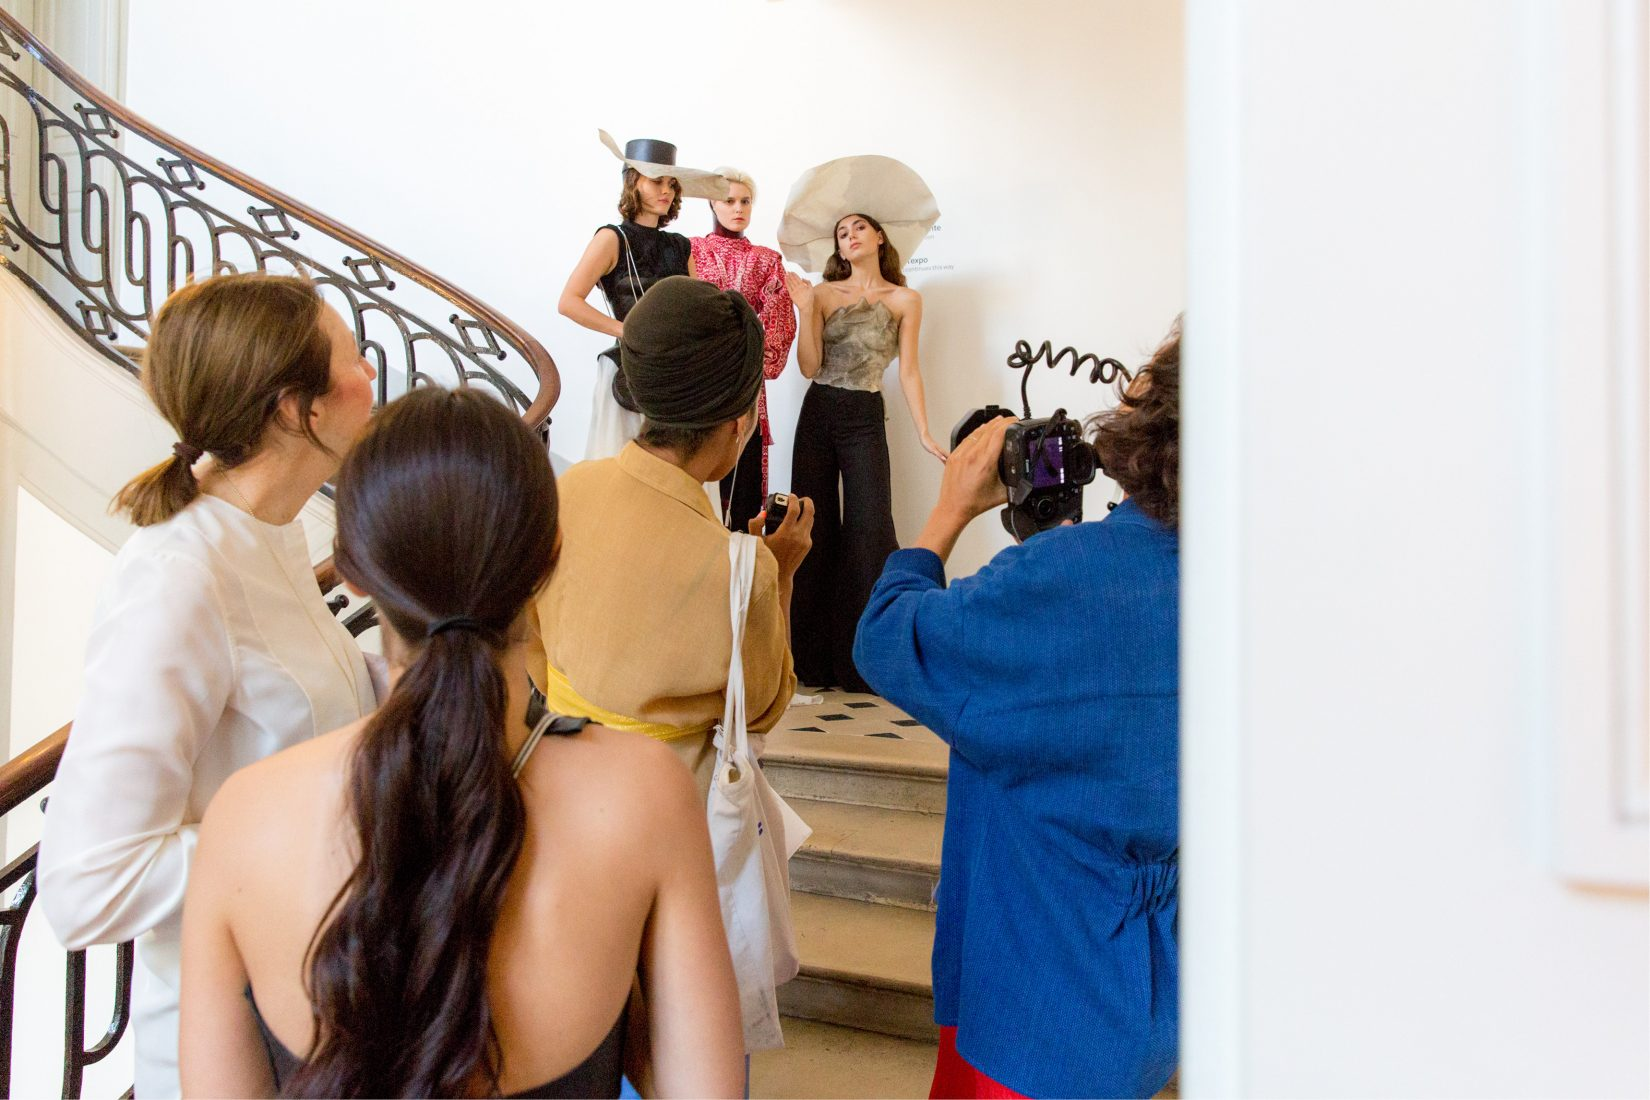 Fashion shoot in the main stair case